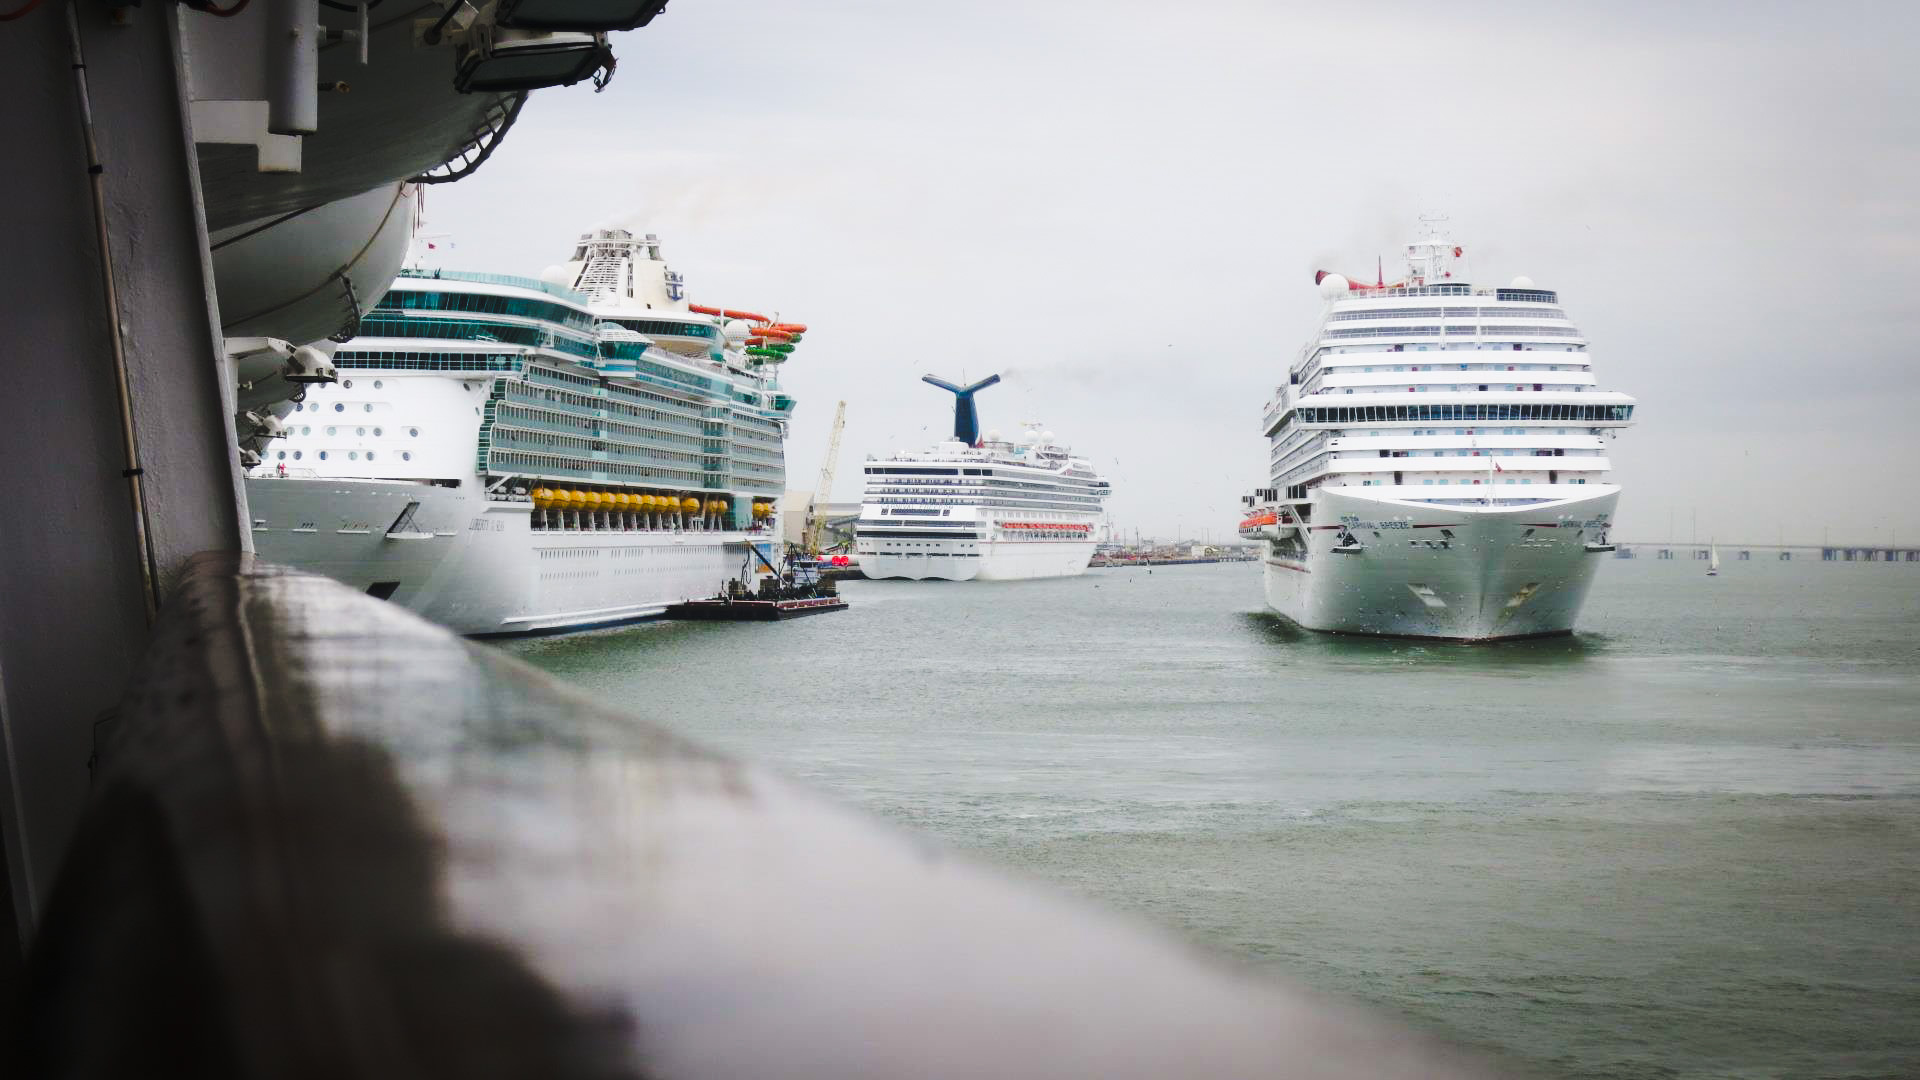 Cruise Ships Give Hurricane Harvey a Wide Berth